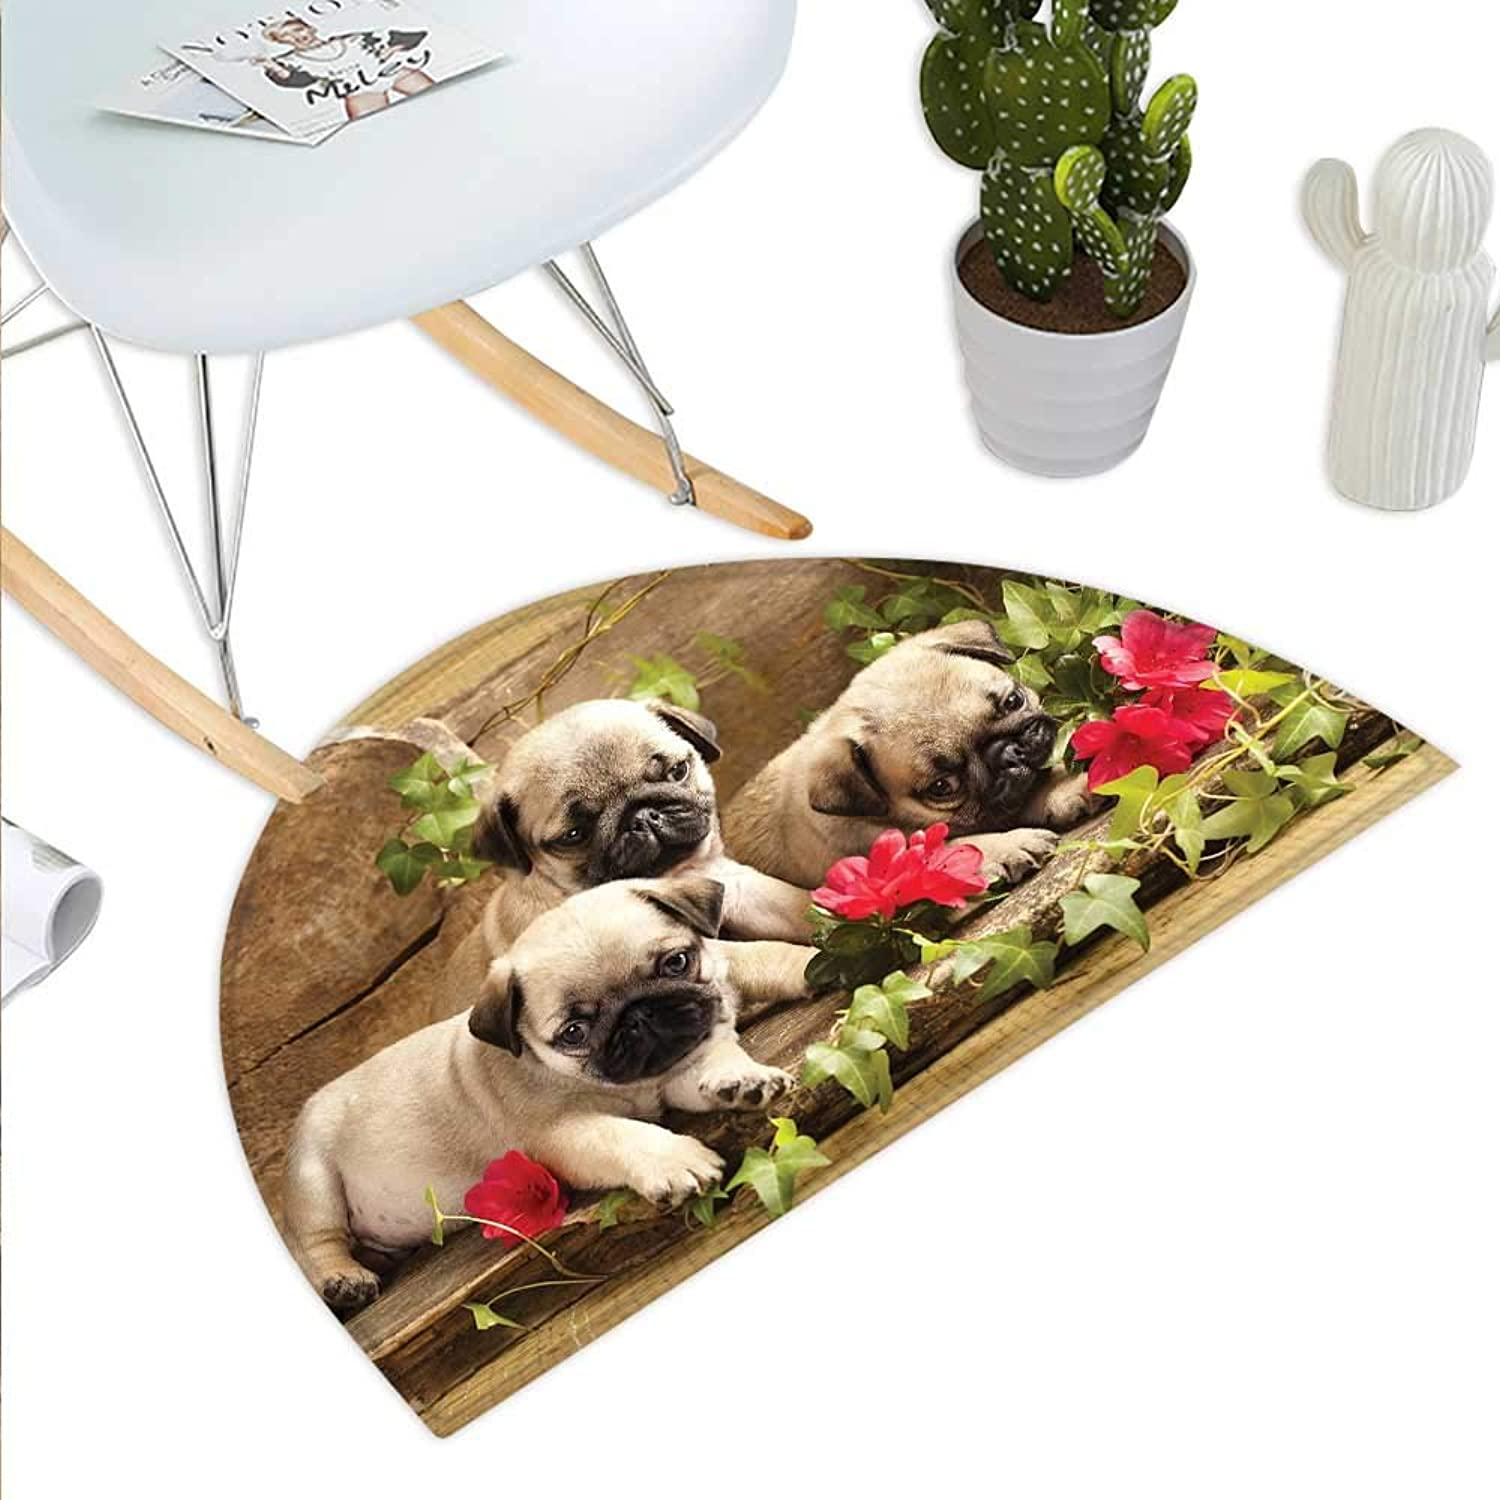 Pug Semicircle Doormat Cute Sibling Puppies with Floral Arrangement in Front Wooden Backdrop Halfmoon doormats H 43.3  xD 64.9  Eggshell Brown Fern Green